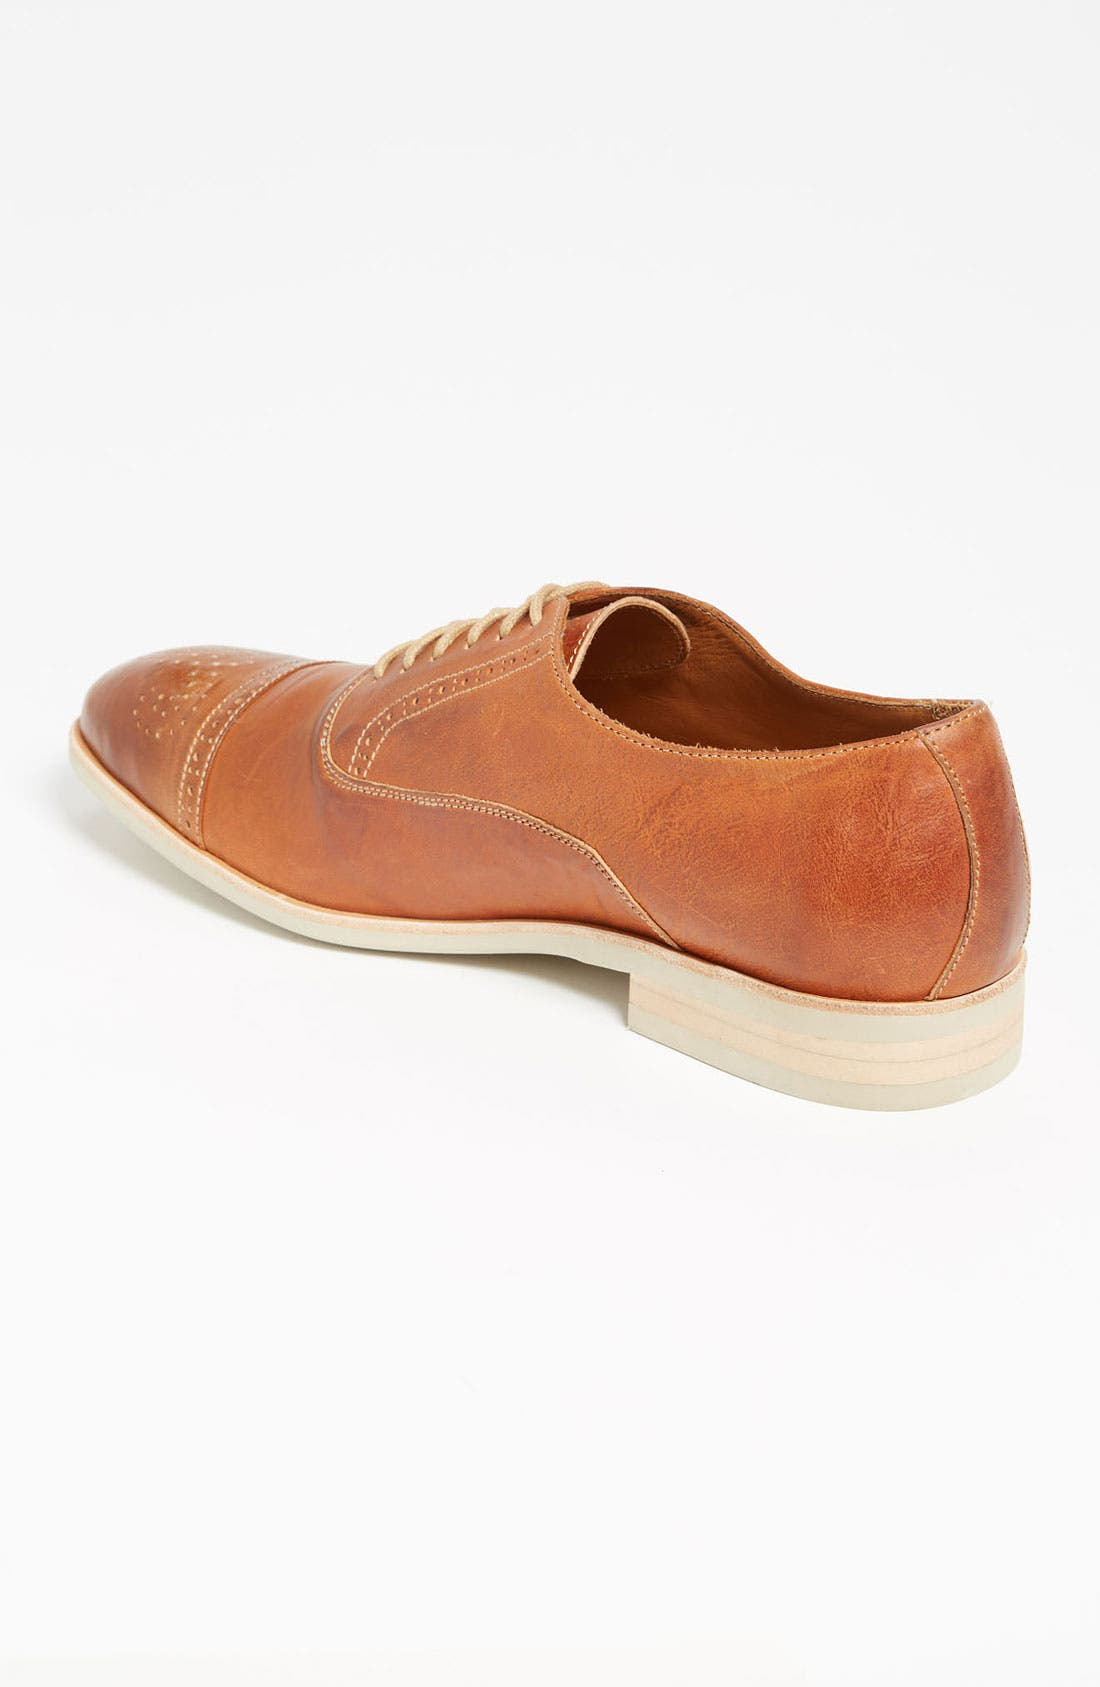 Alternate Image 2  - Maison Forte 'Hyeres' Cap Toe Oxford